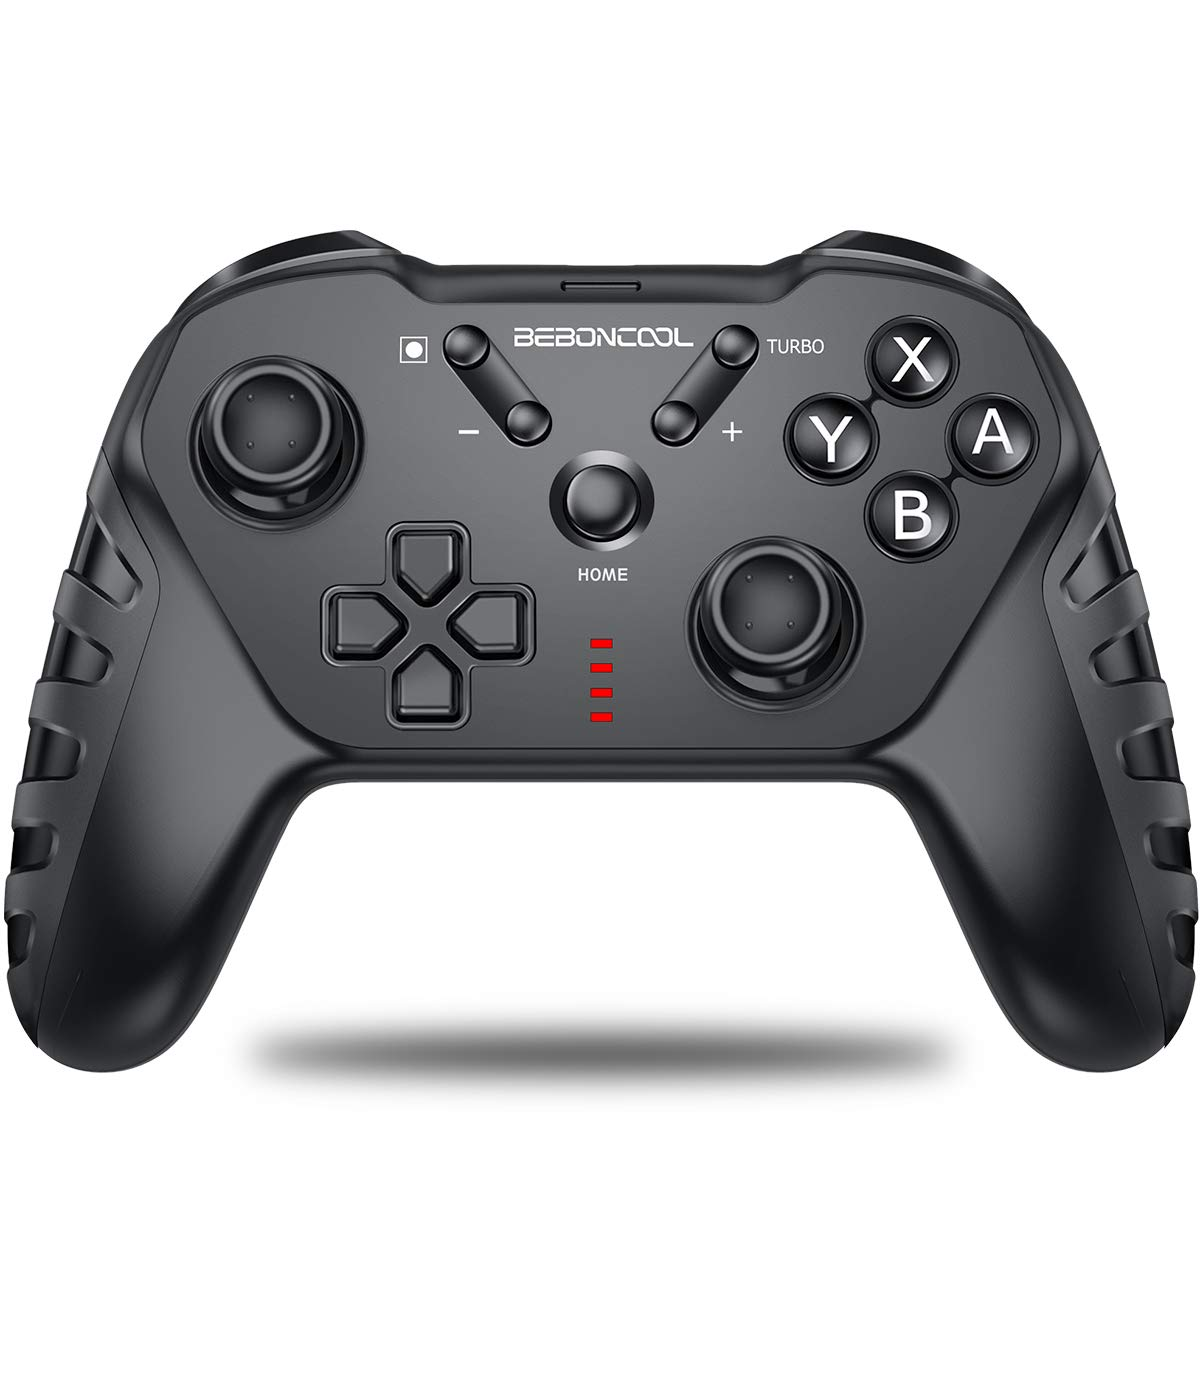 BEBONCOOL Switch Controller for Nintendo Switch/Lite with Auto-Fire Function, Wireless Switch Pro Controller with Turbo,Motion Control,Dual Shock for Nintendo Switch Controller